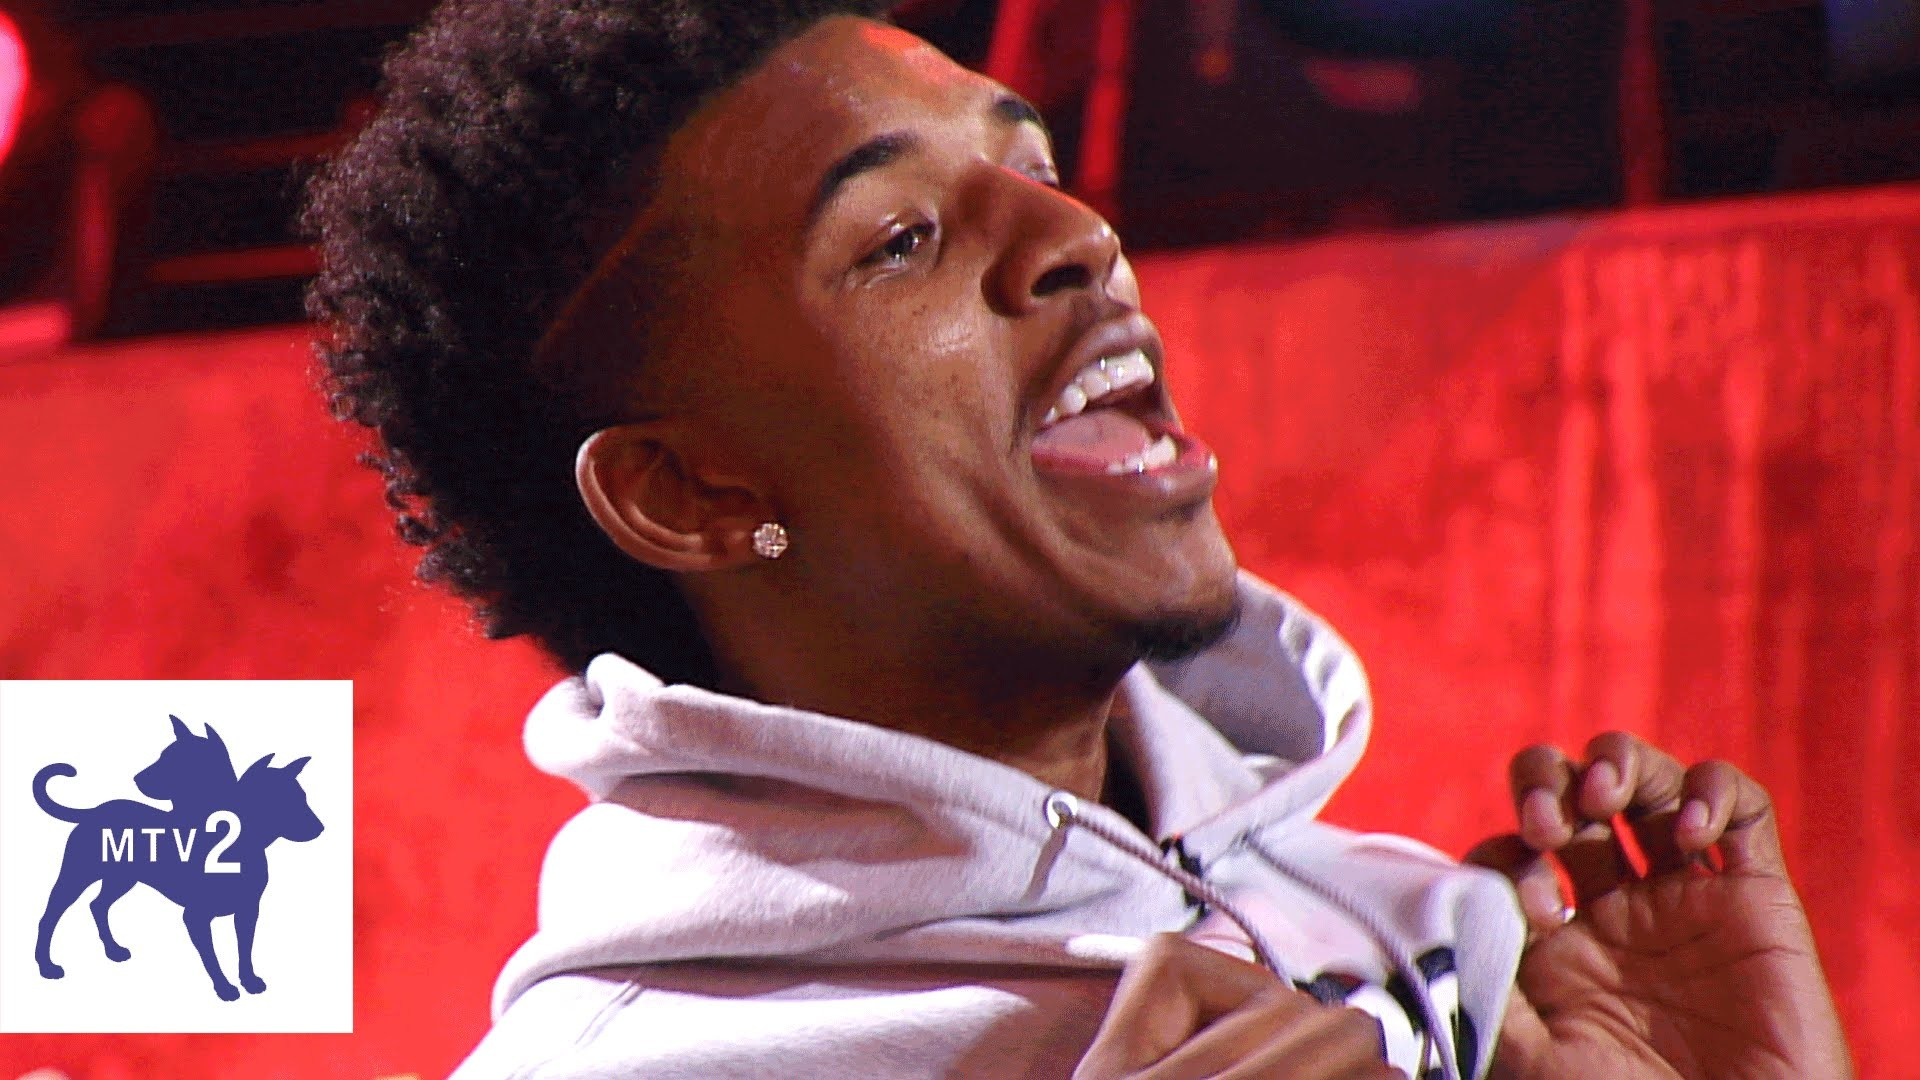 Wild 'N Out   Nick Young Dissed About Lakers & Iggy Azalea   #Wildstyle –  KARDES MUZIK